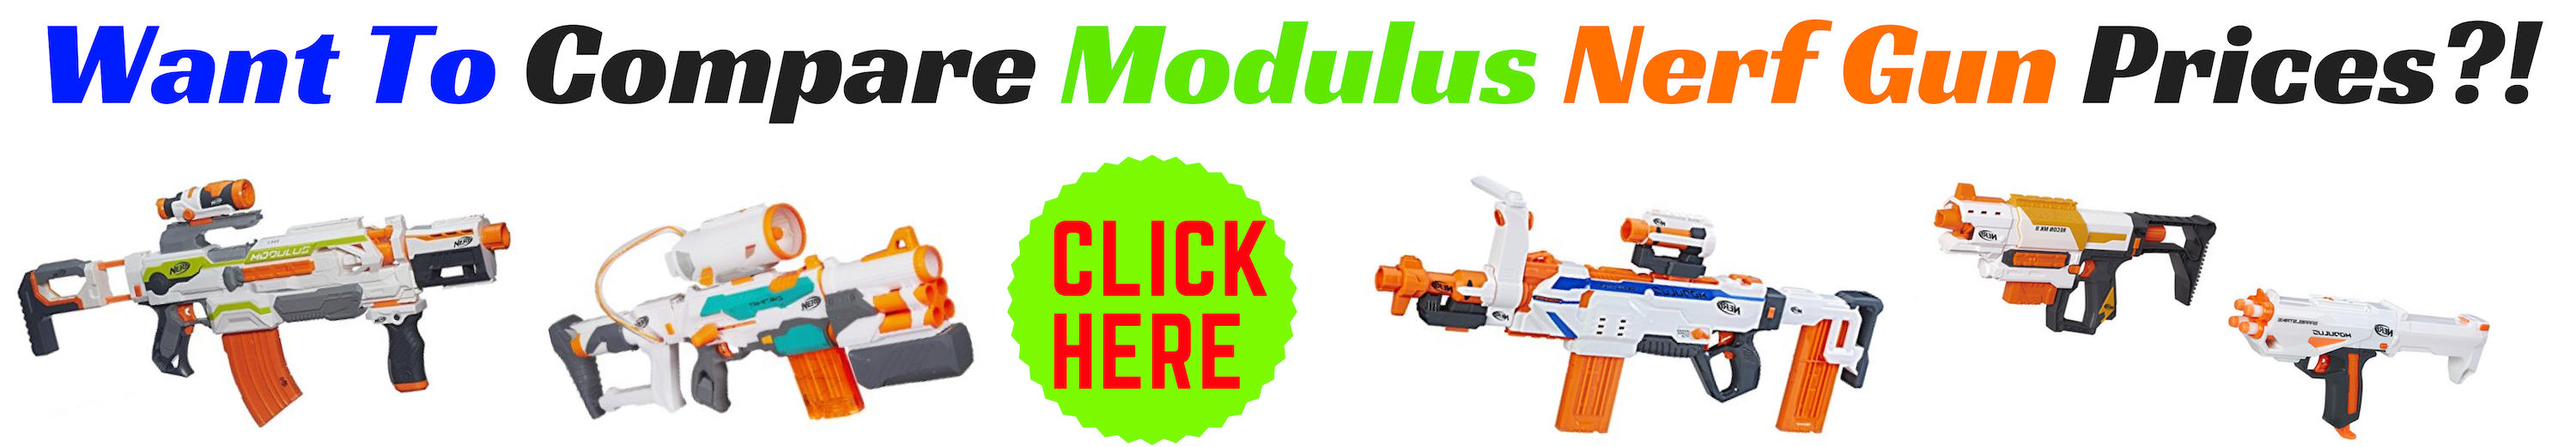 Want To Compare Modulus Nerf Gun Prices